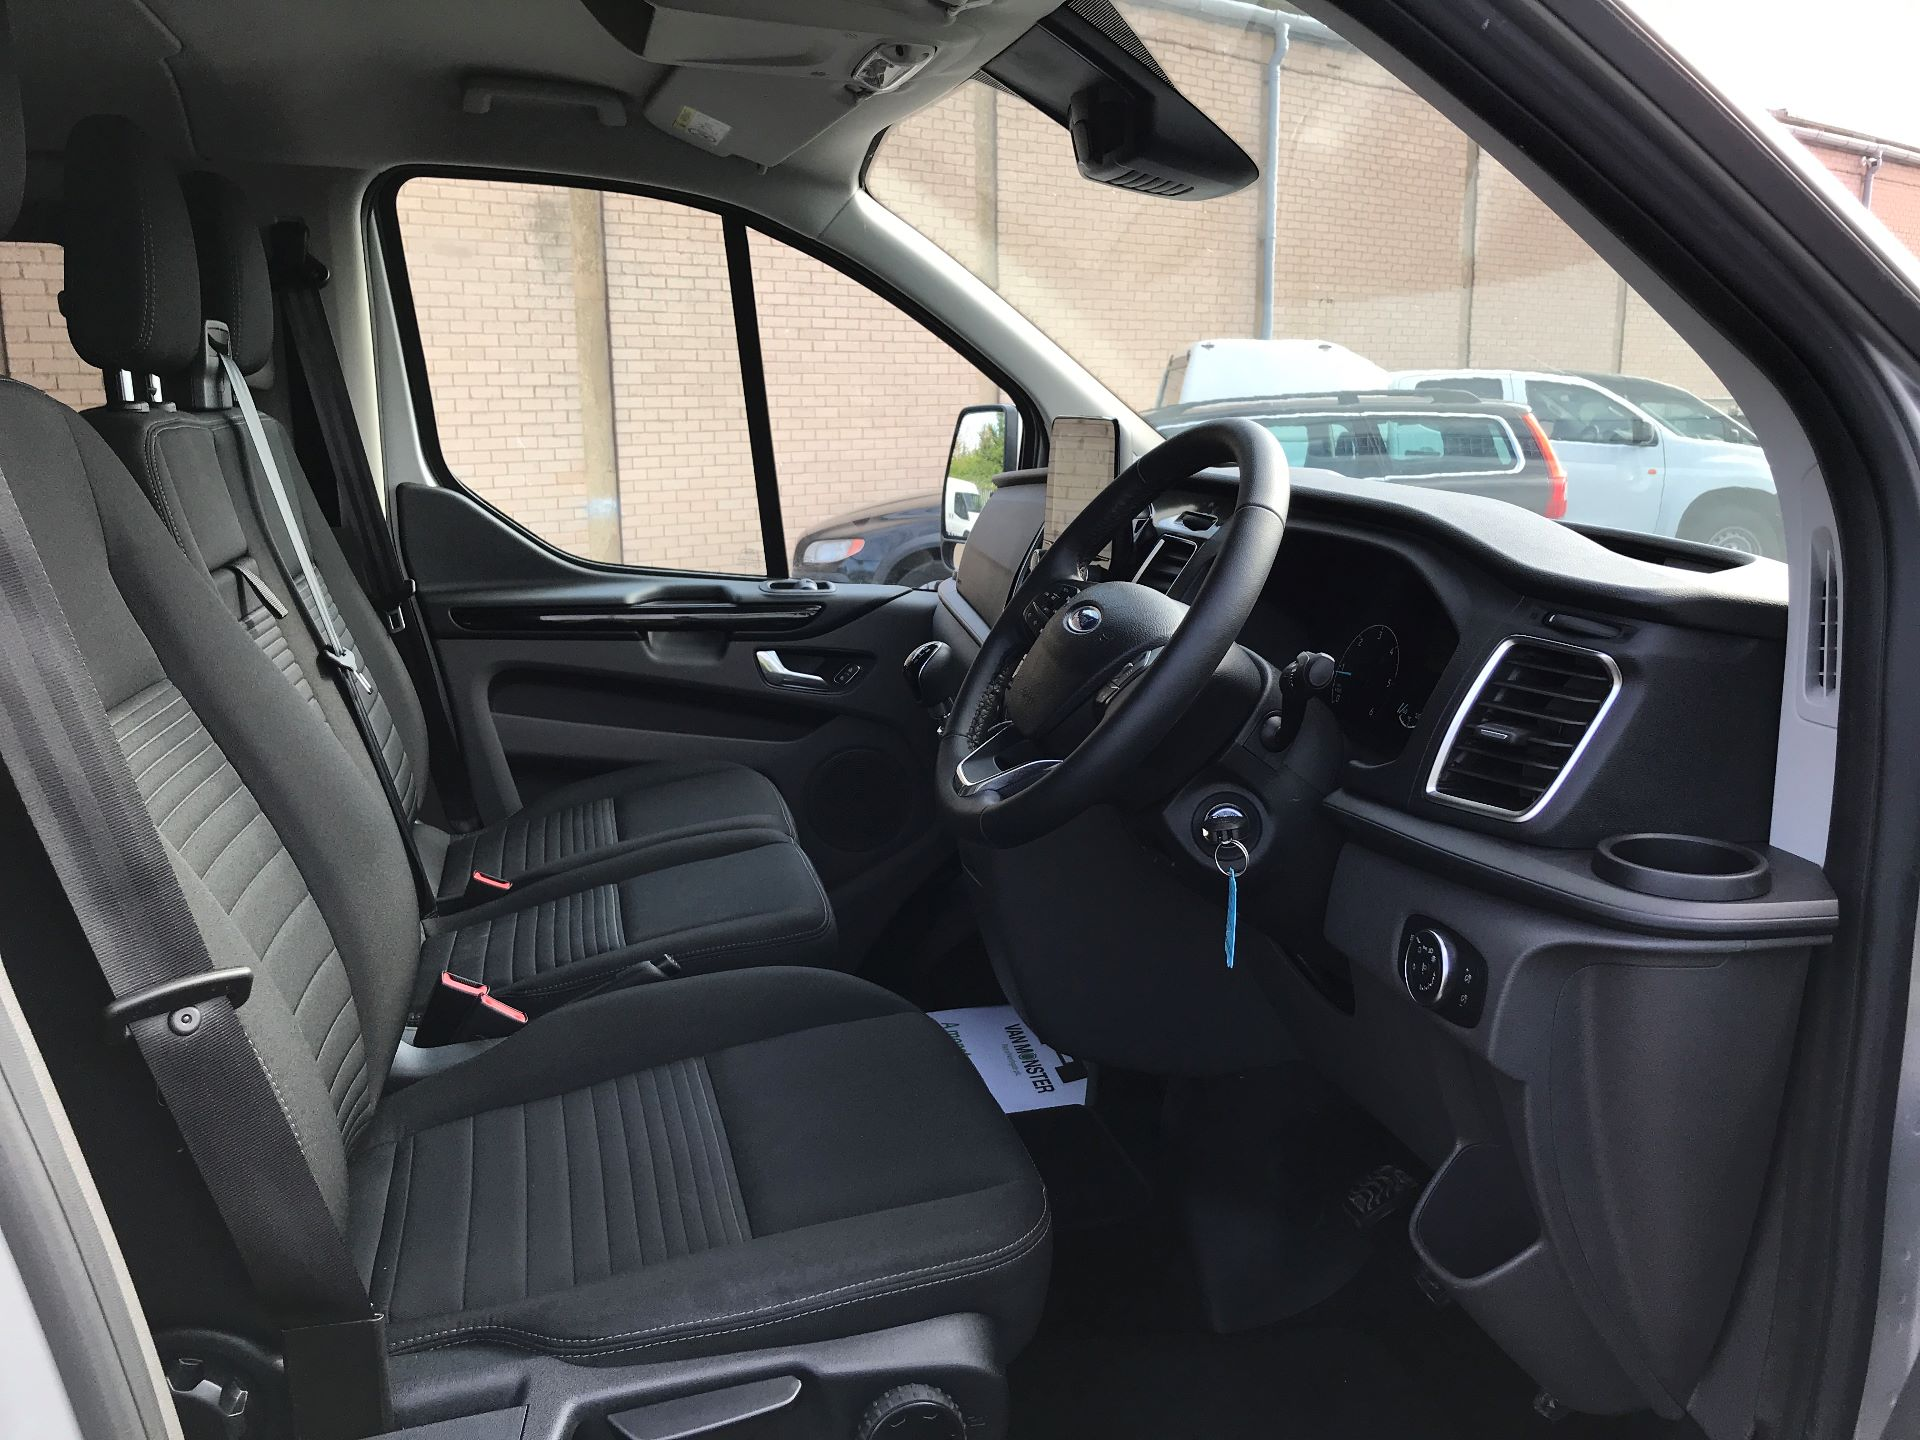 2018 Ford Transit Custom 320 L1 2.0TDCI 130PS LOW ROOF DOUBLE CAB LIMITED EURO 6 (HG68MPZ) Image 2